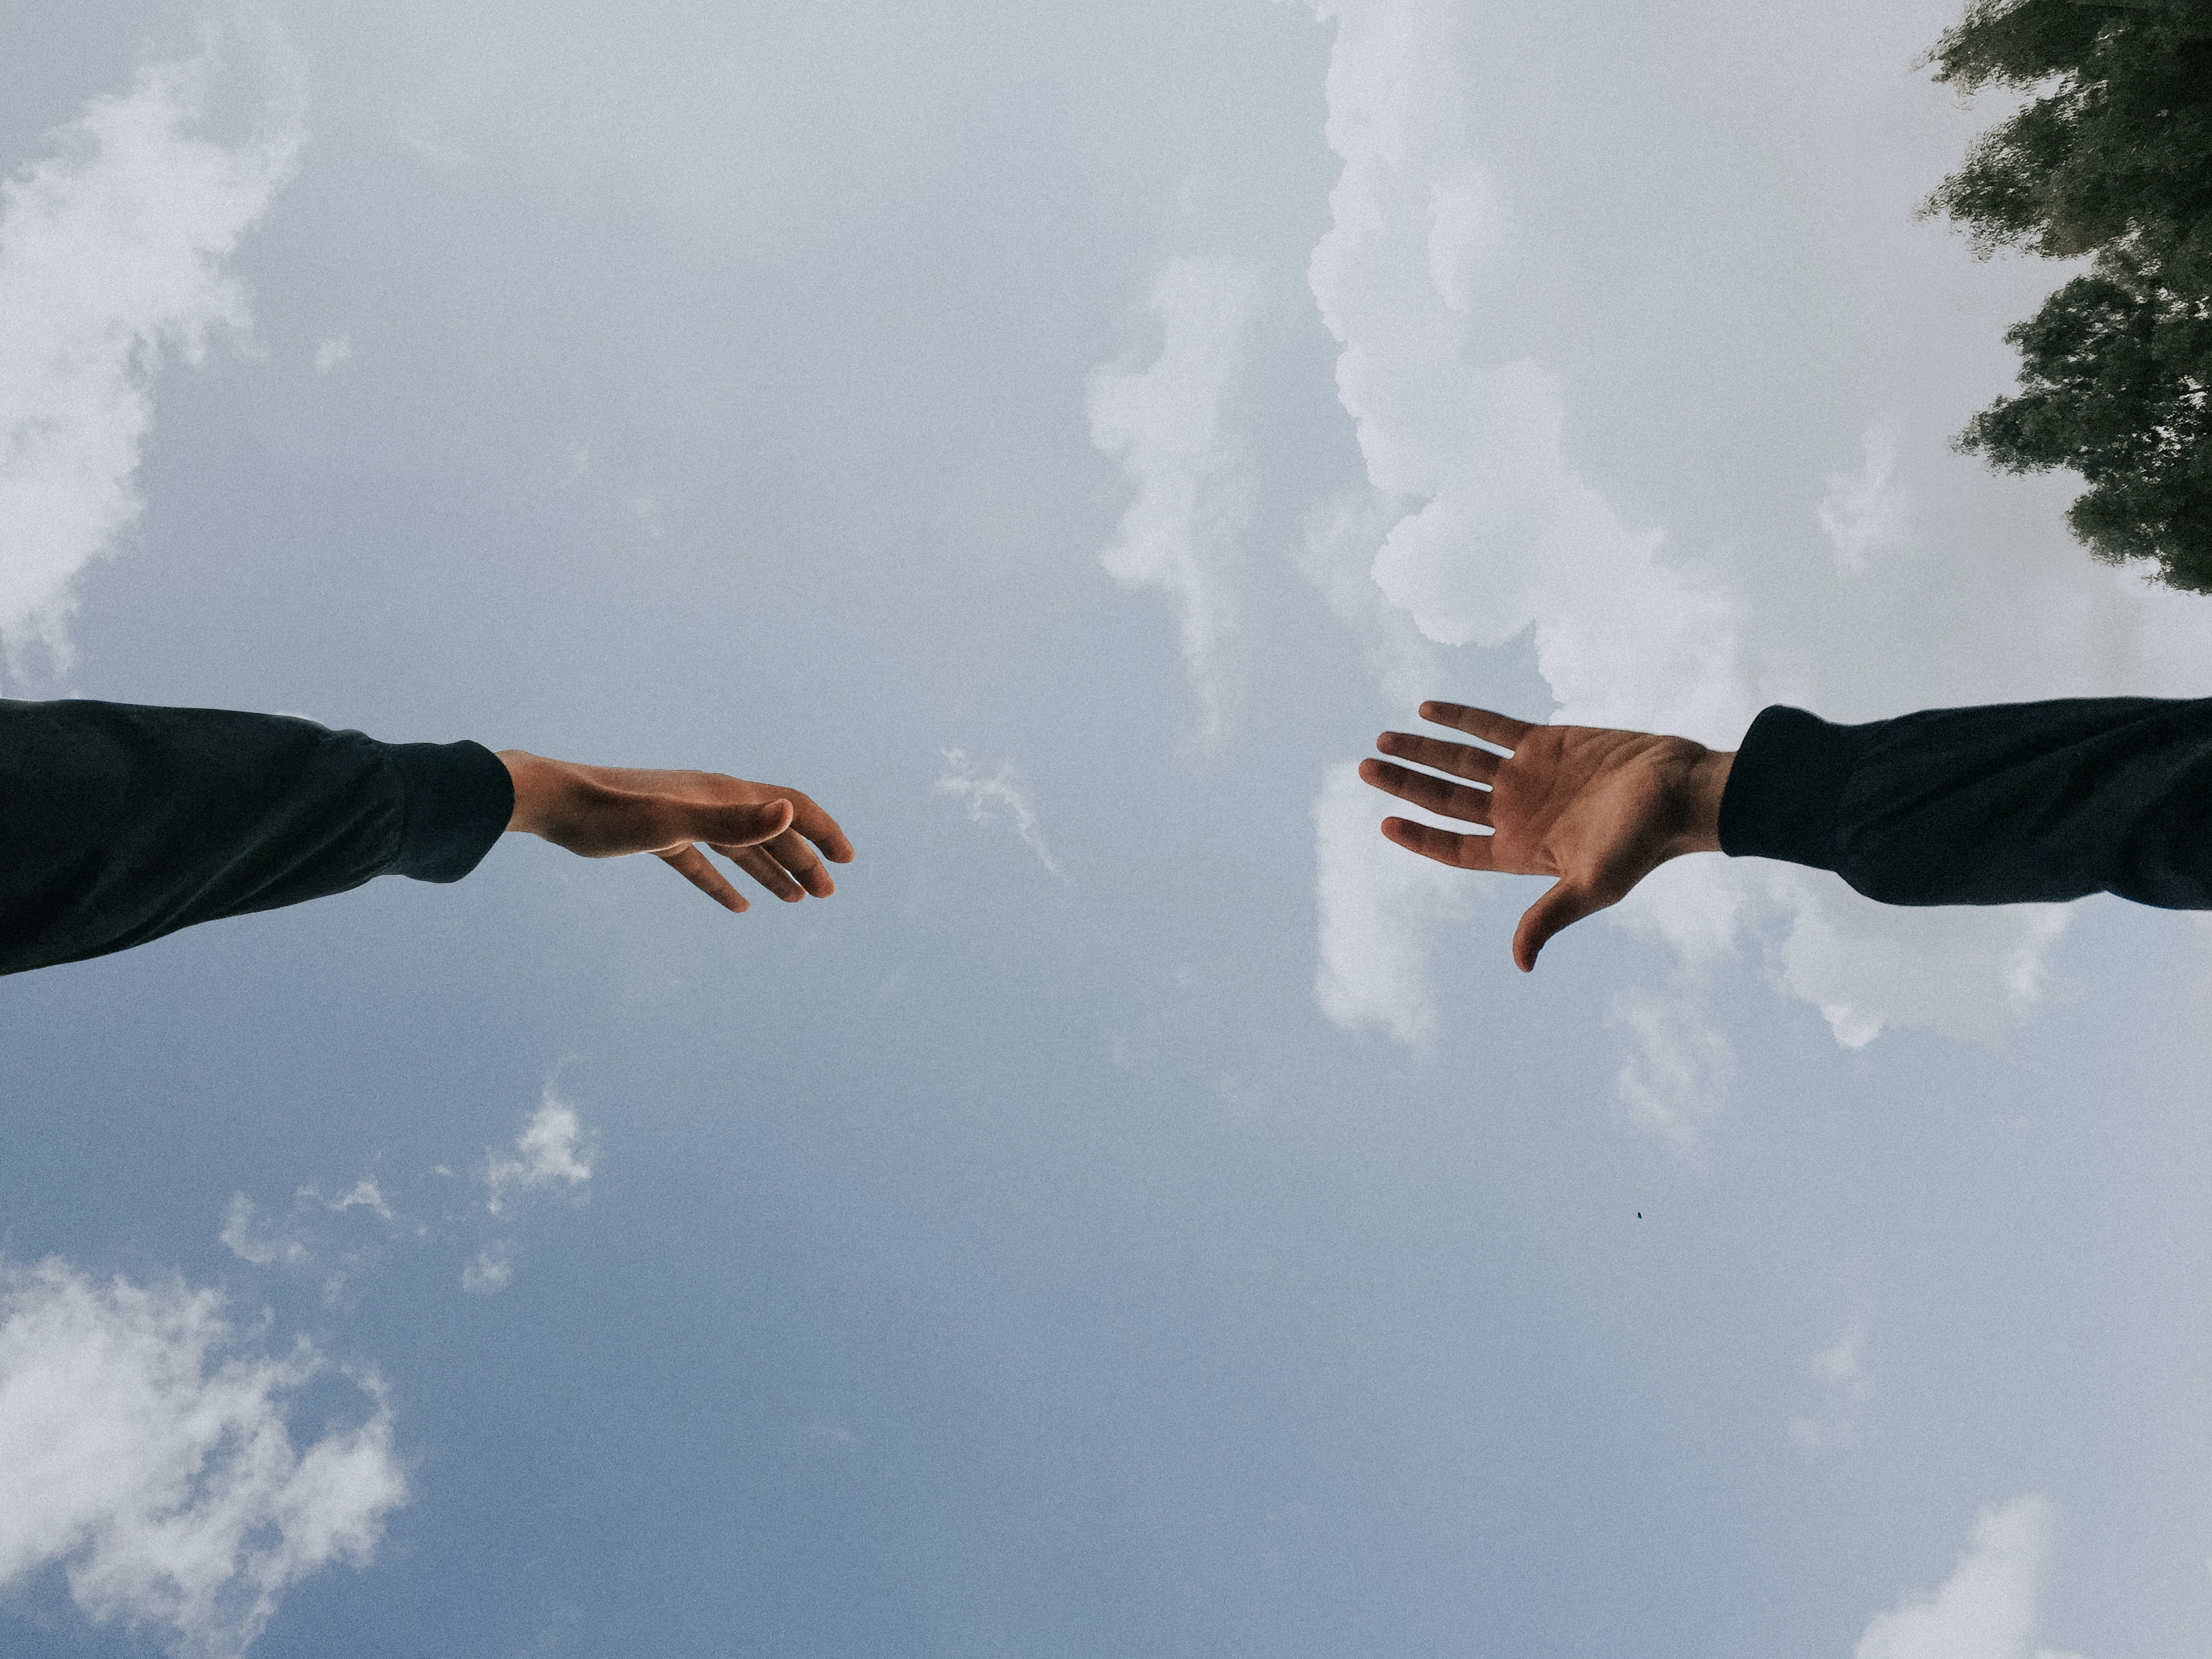 Two hands reaching for each other with a sky in the background.